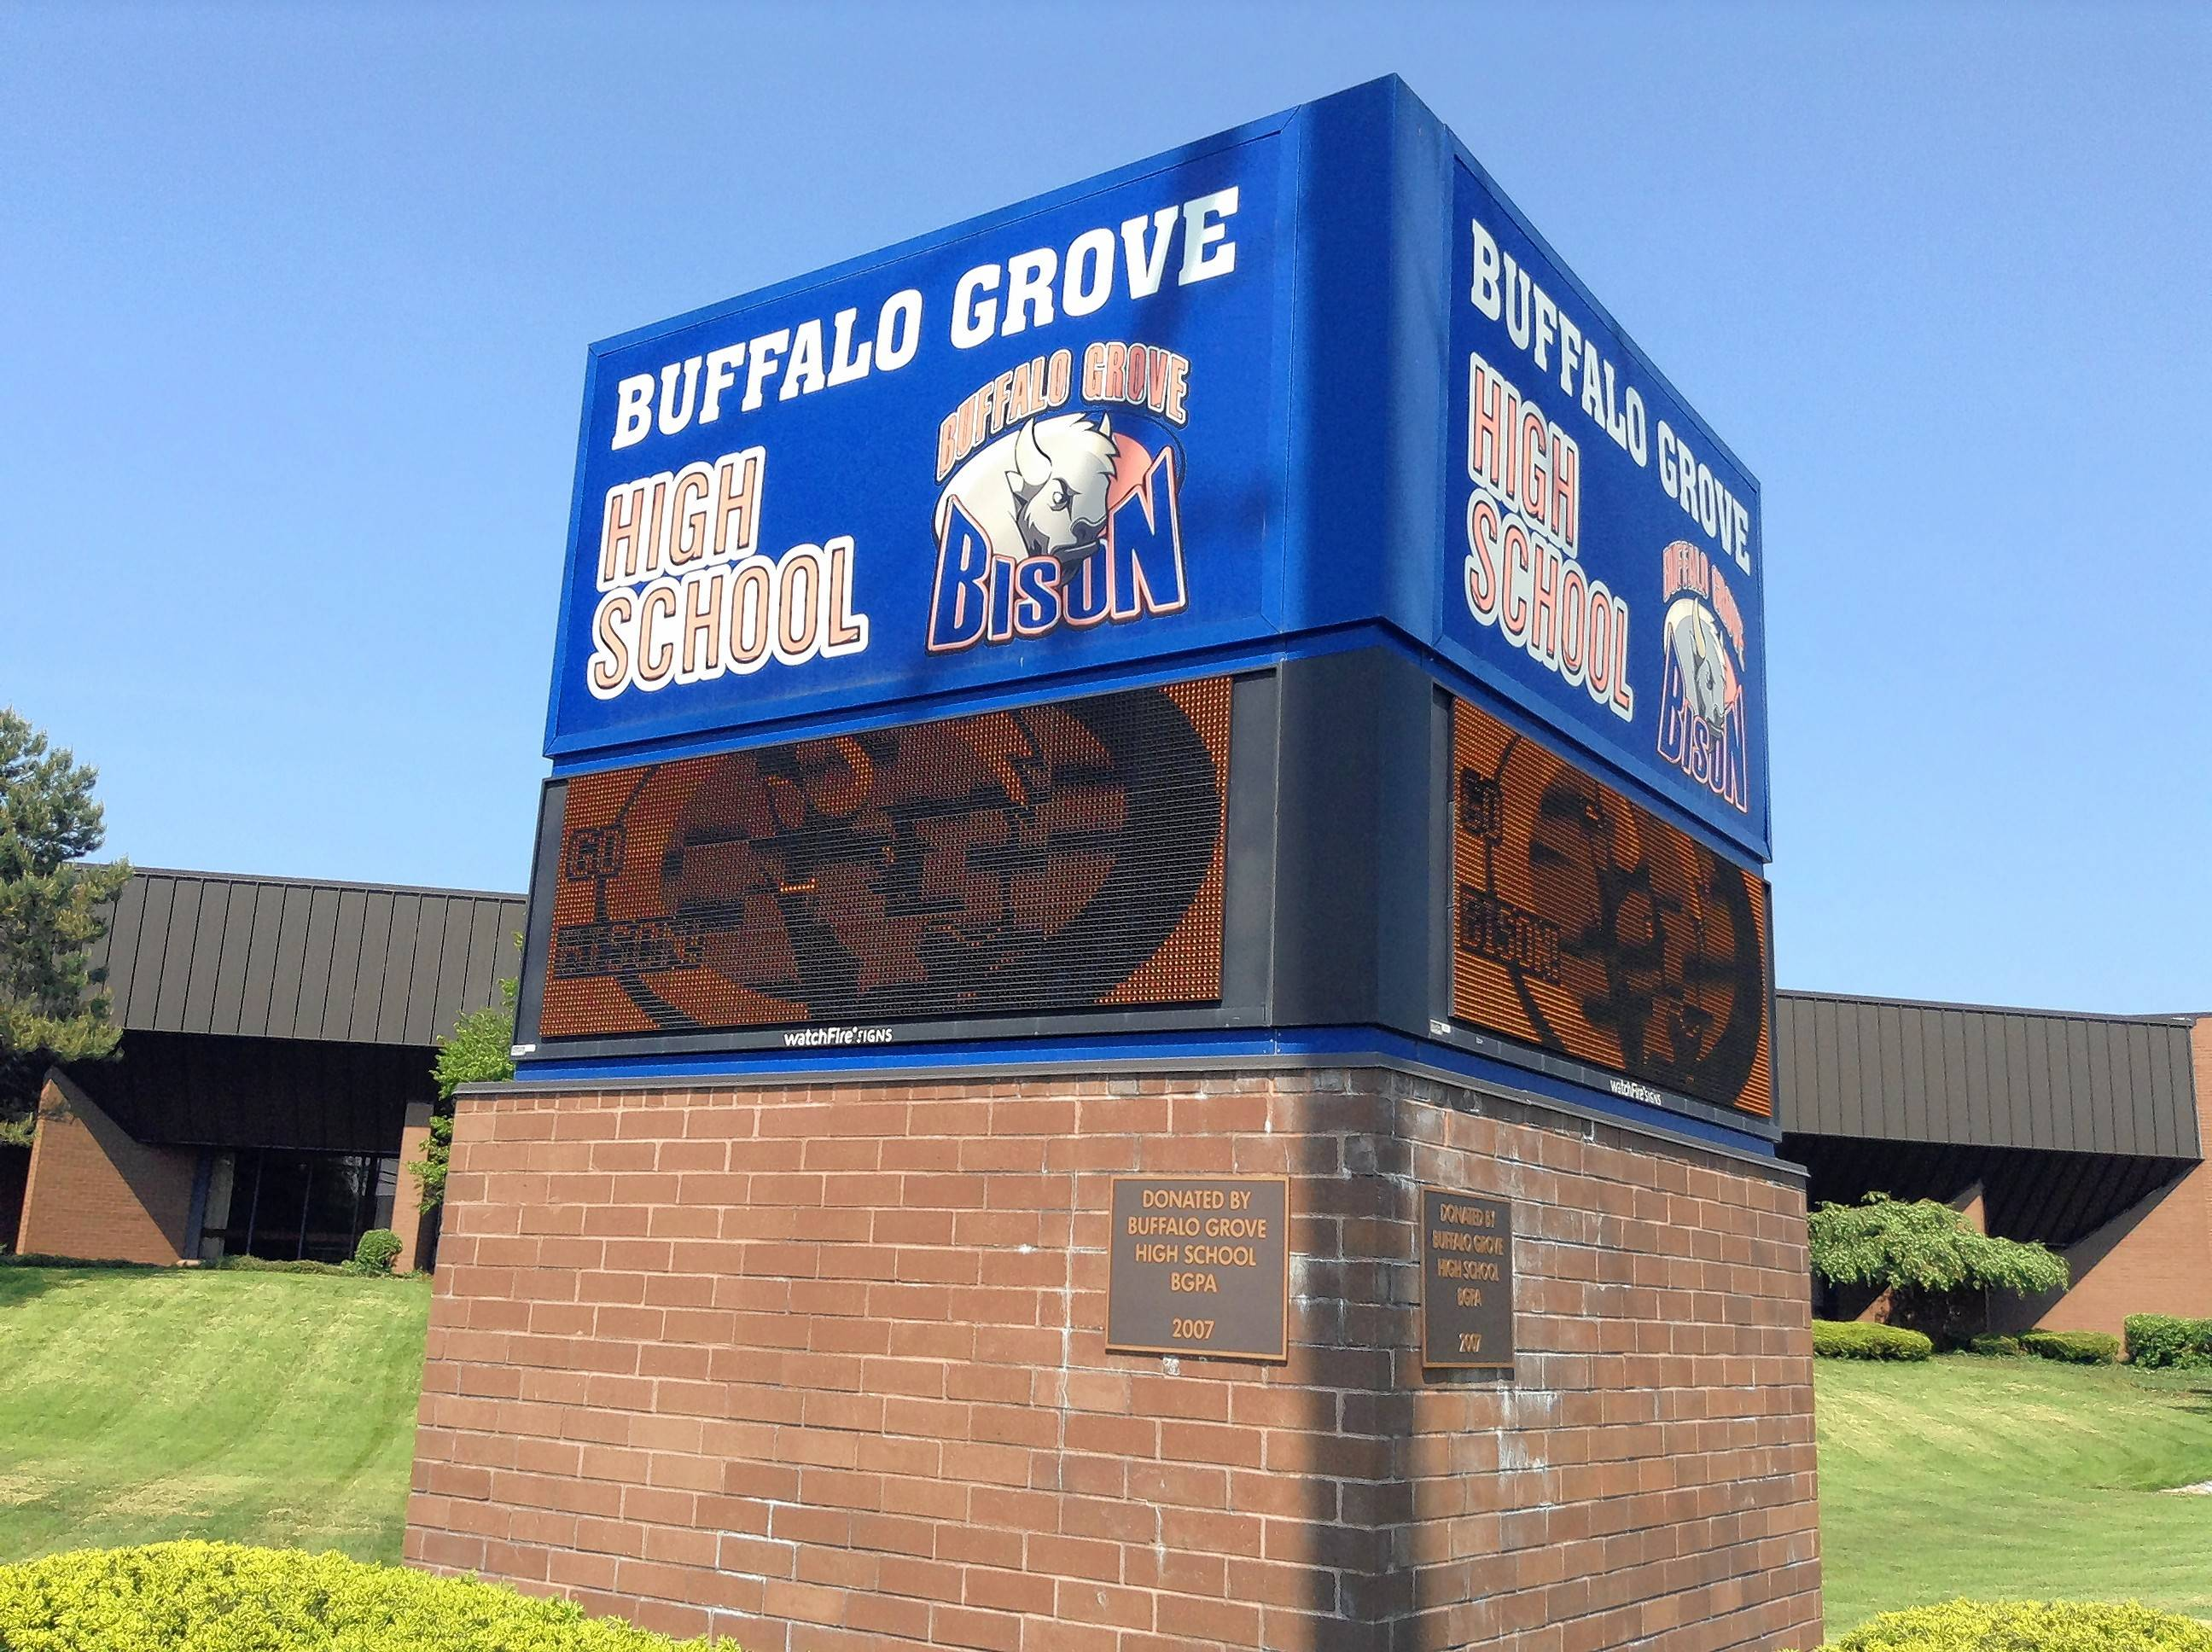 A digital monolith outside Buffalo Grove High School shares school news and messages with passers-by.